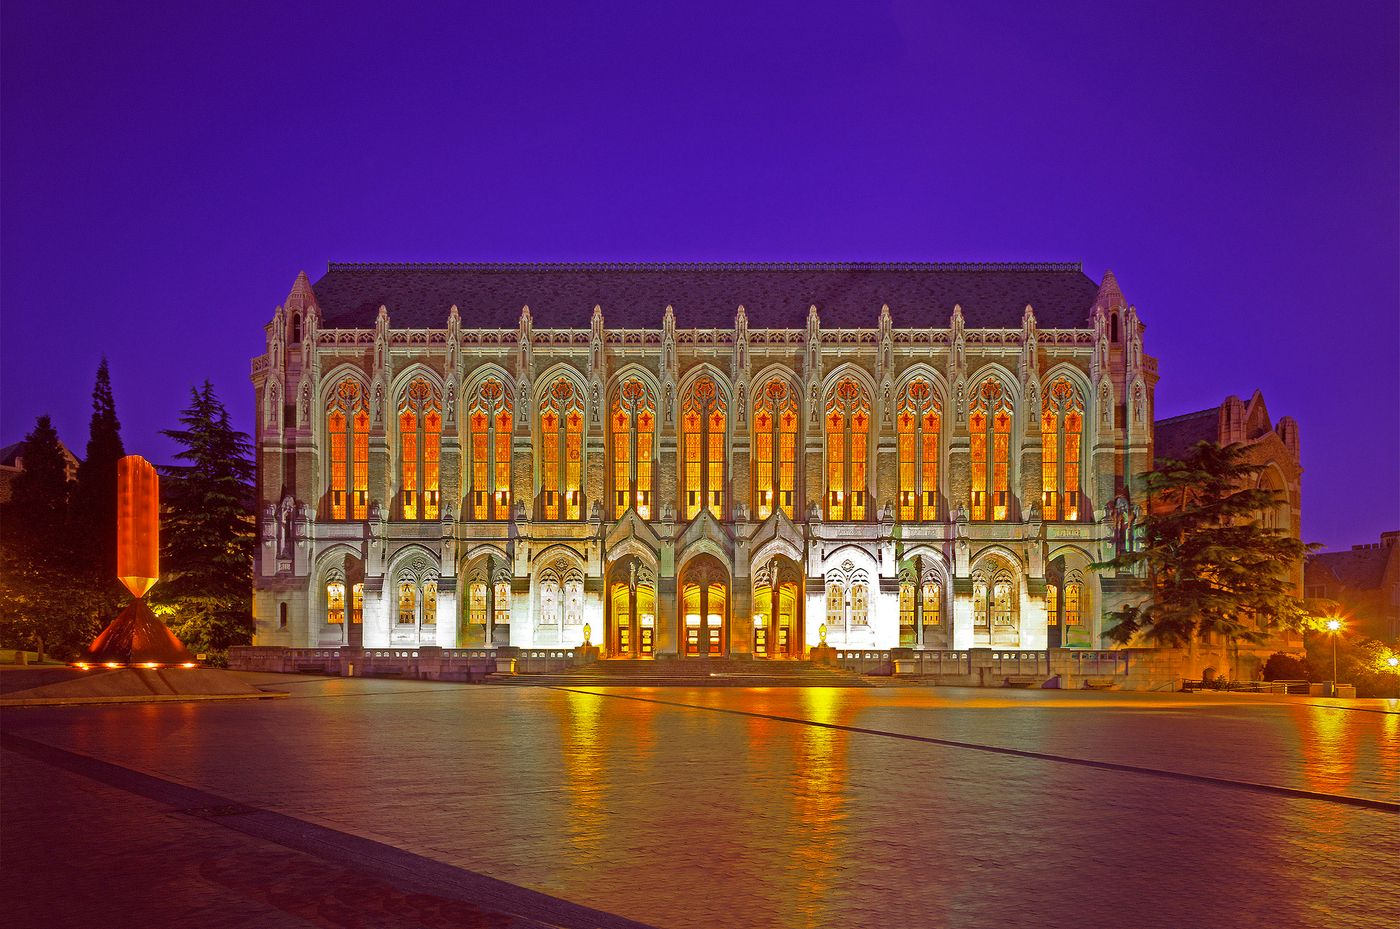 Suzallo Library at Twilight